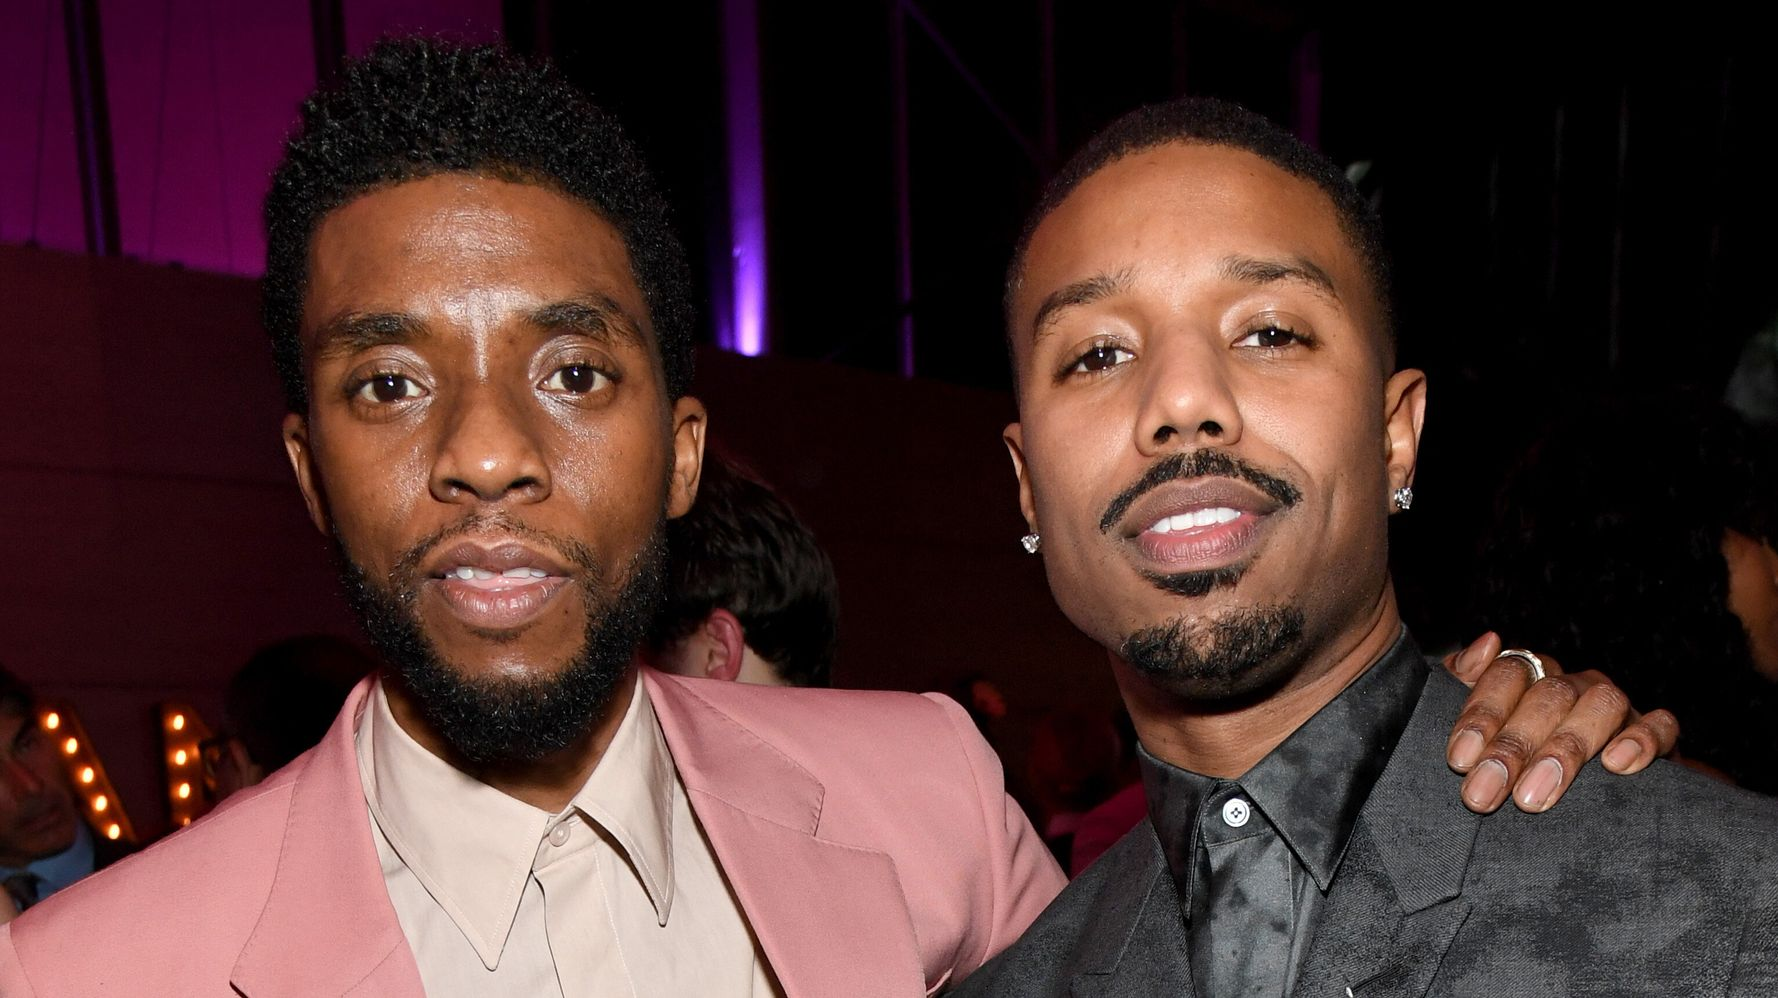 Michael B. Jordan Reflects On 'Still Dealing With' Losing Chadwick Boseman